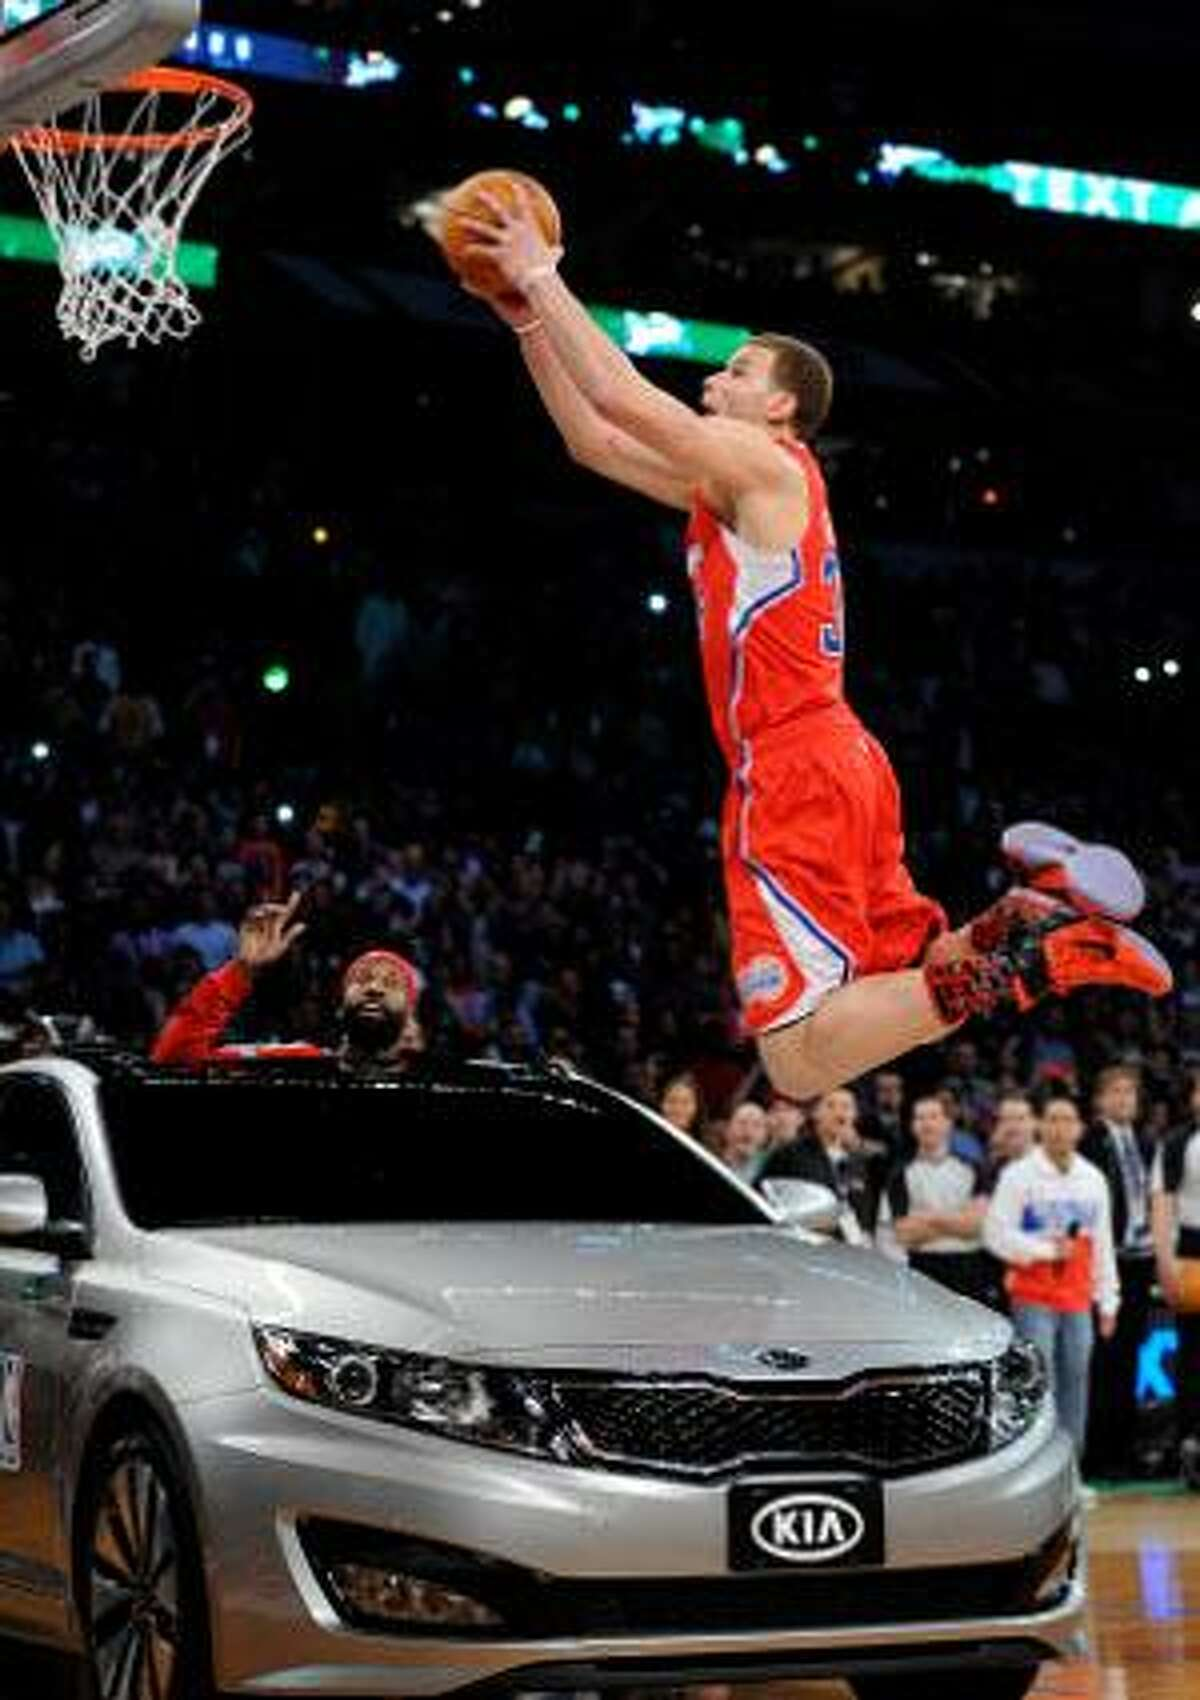 Los Angeles Clippers' Blake Griffin dunks over a car as Baron Davis looks on from inside the car during the Slam Dunk Contest at the NBA All-Star weekend Saturday in Los Angeles. (AP Photo/Mark J. Terrill)